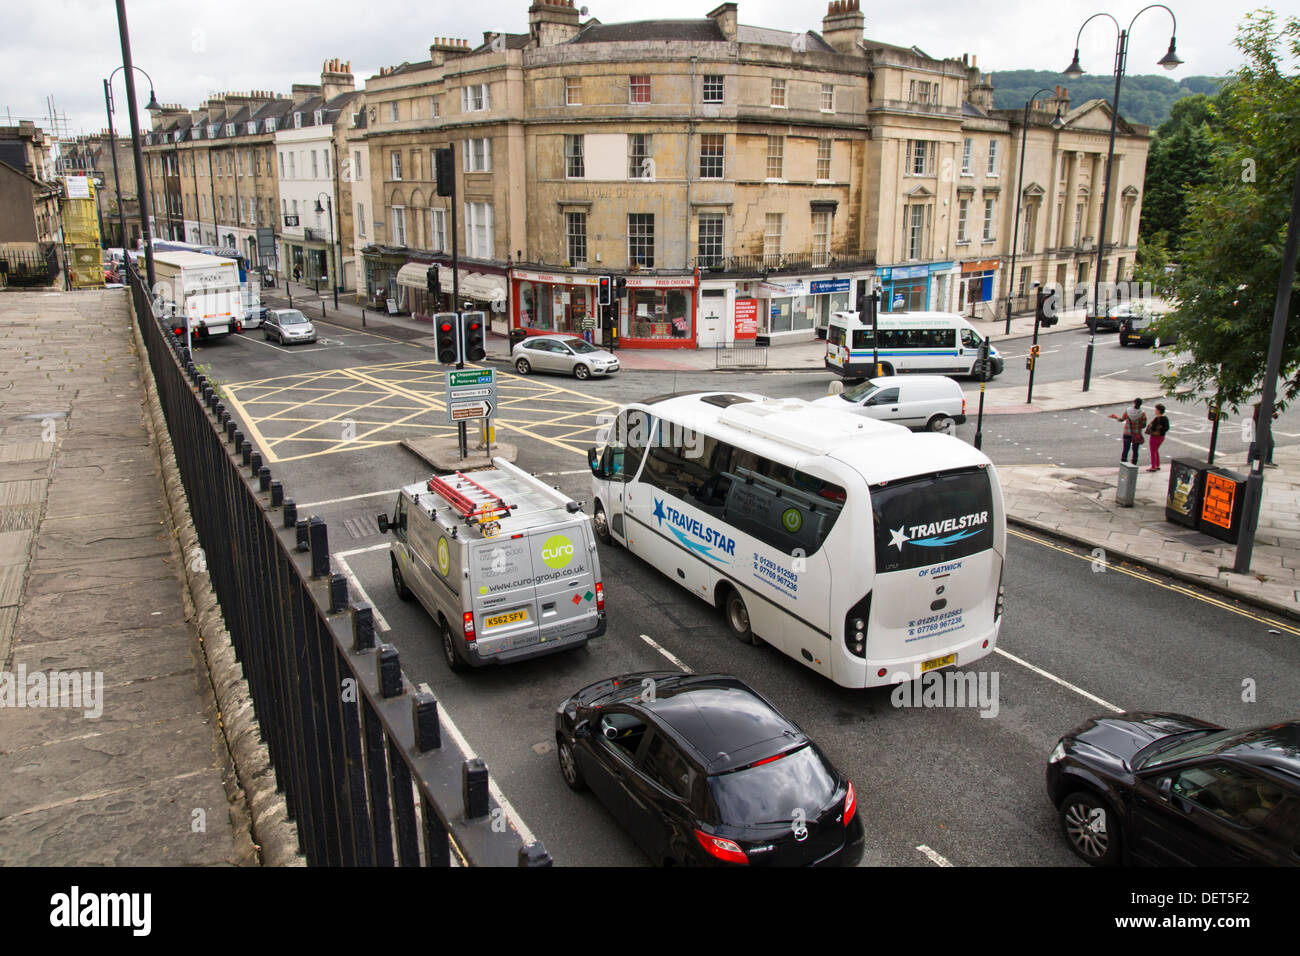 Bath  a city in Somerset England UK  City congestion and traffic - Stock Image